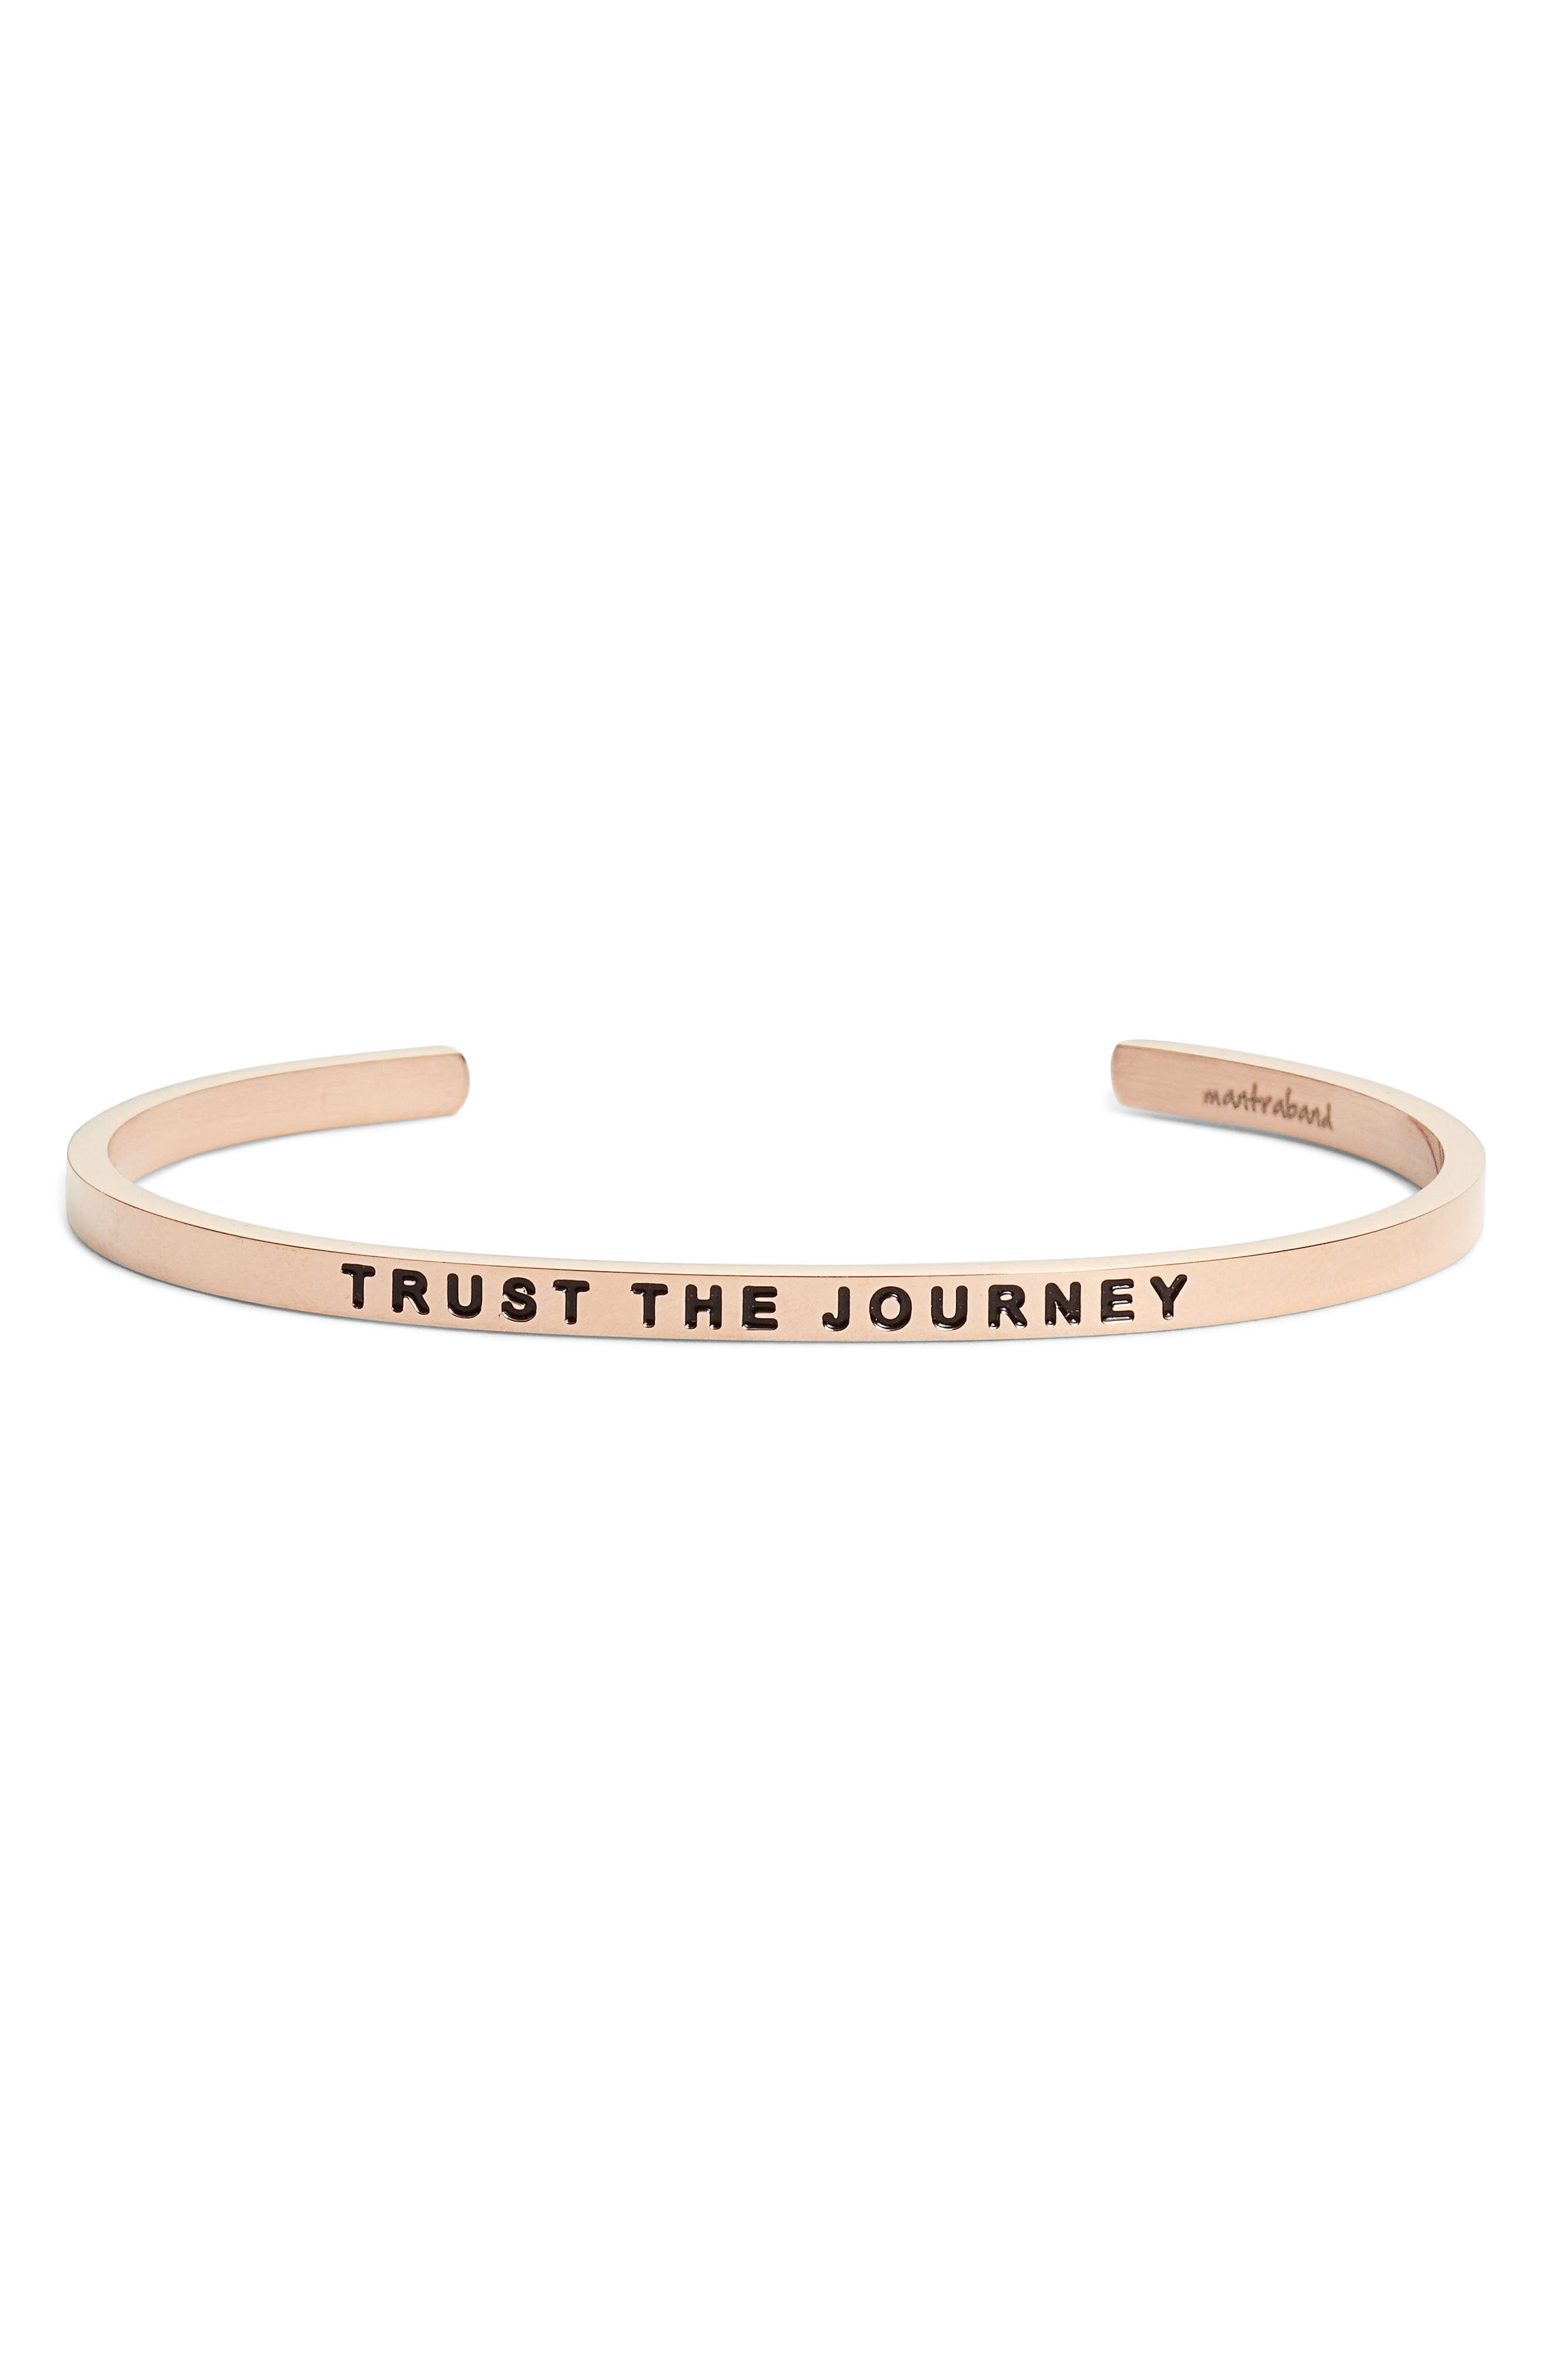 Trust the Journey Cuff,                             Main thumbnail 2, color,